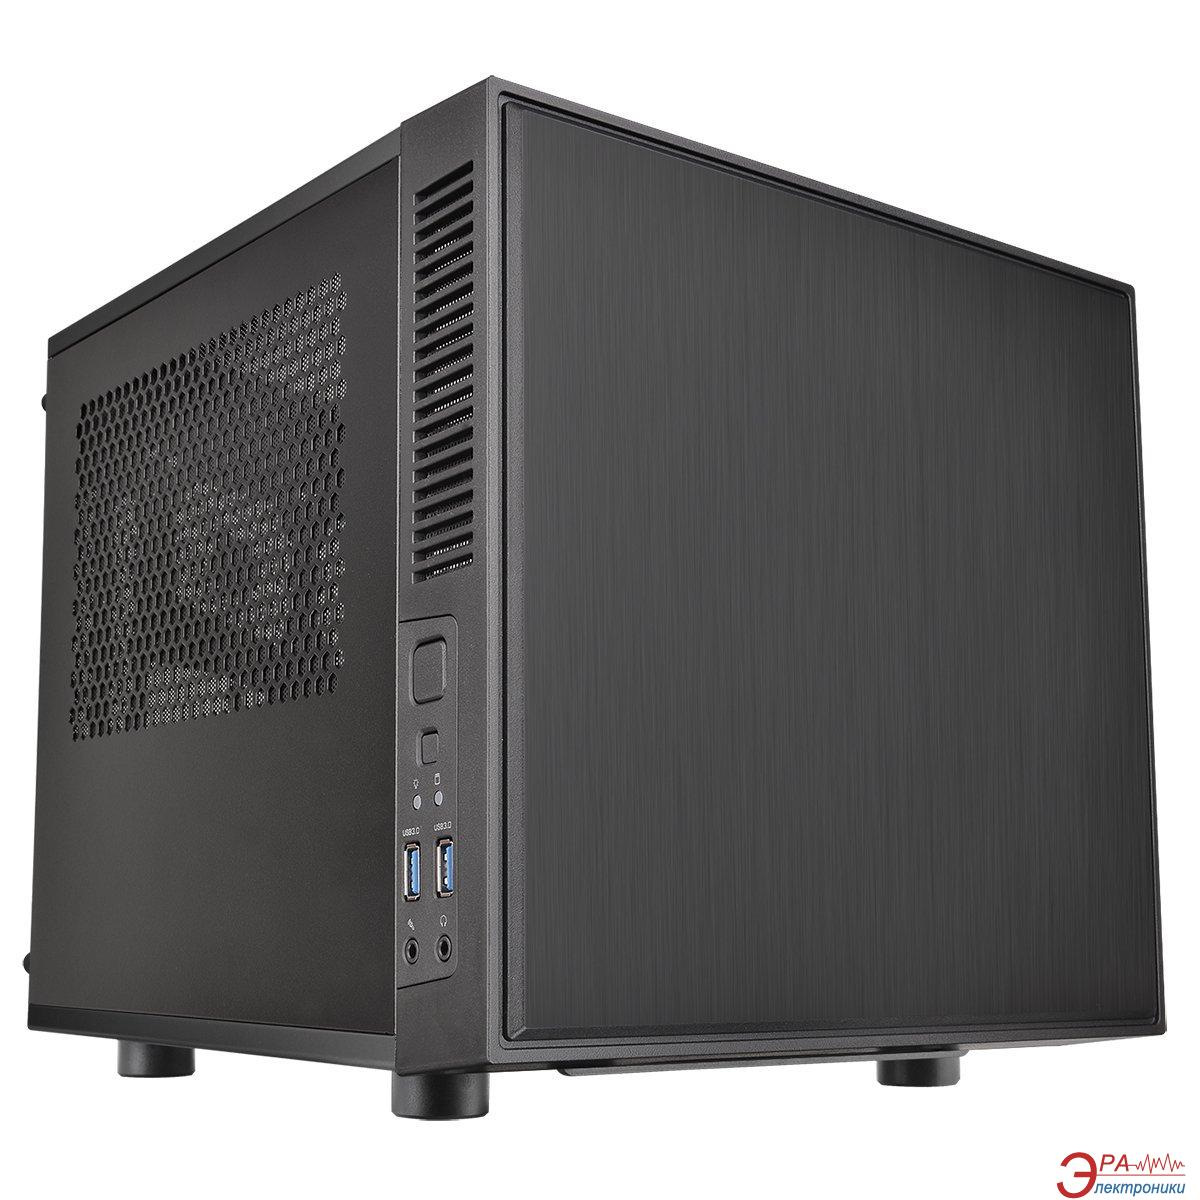 Корпус Thermaltake Suppressor F1 Black (CA-1E6-00S1WN-00) Без БП